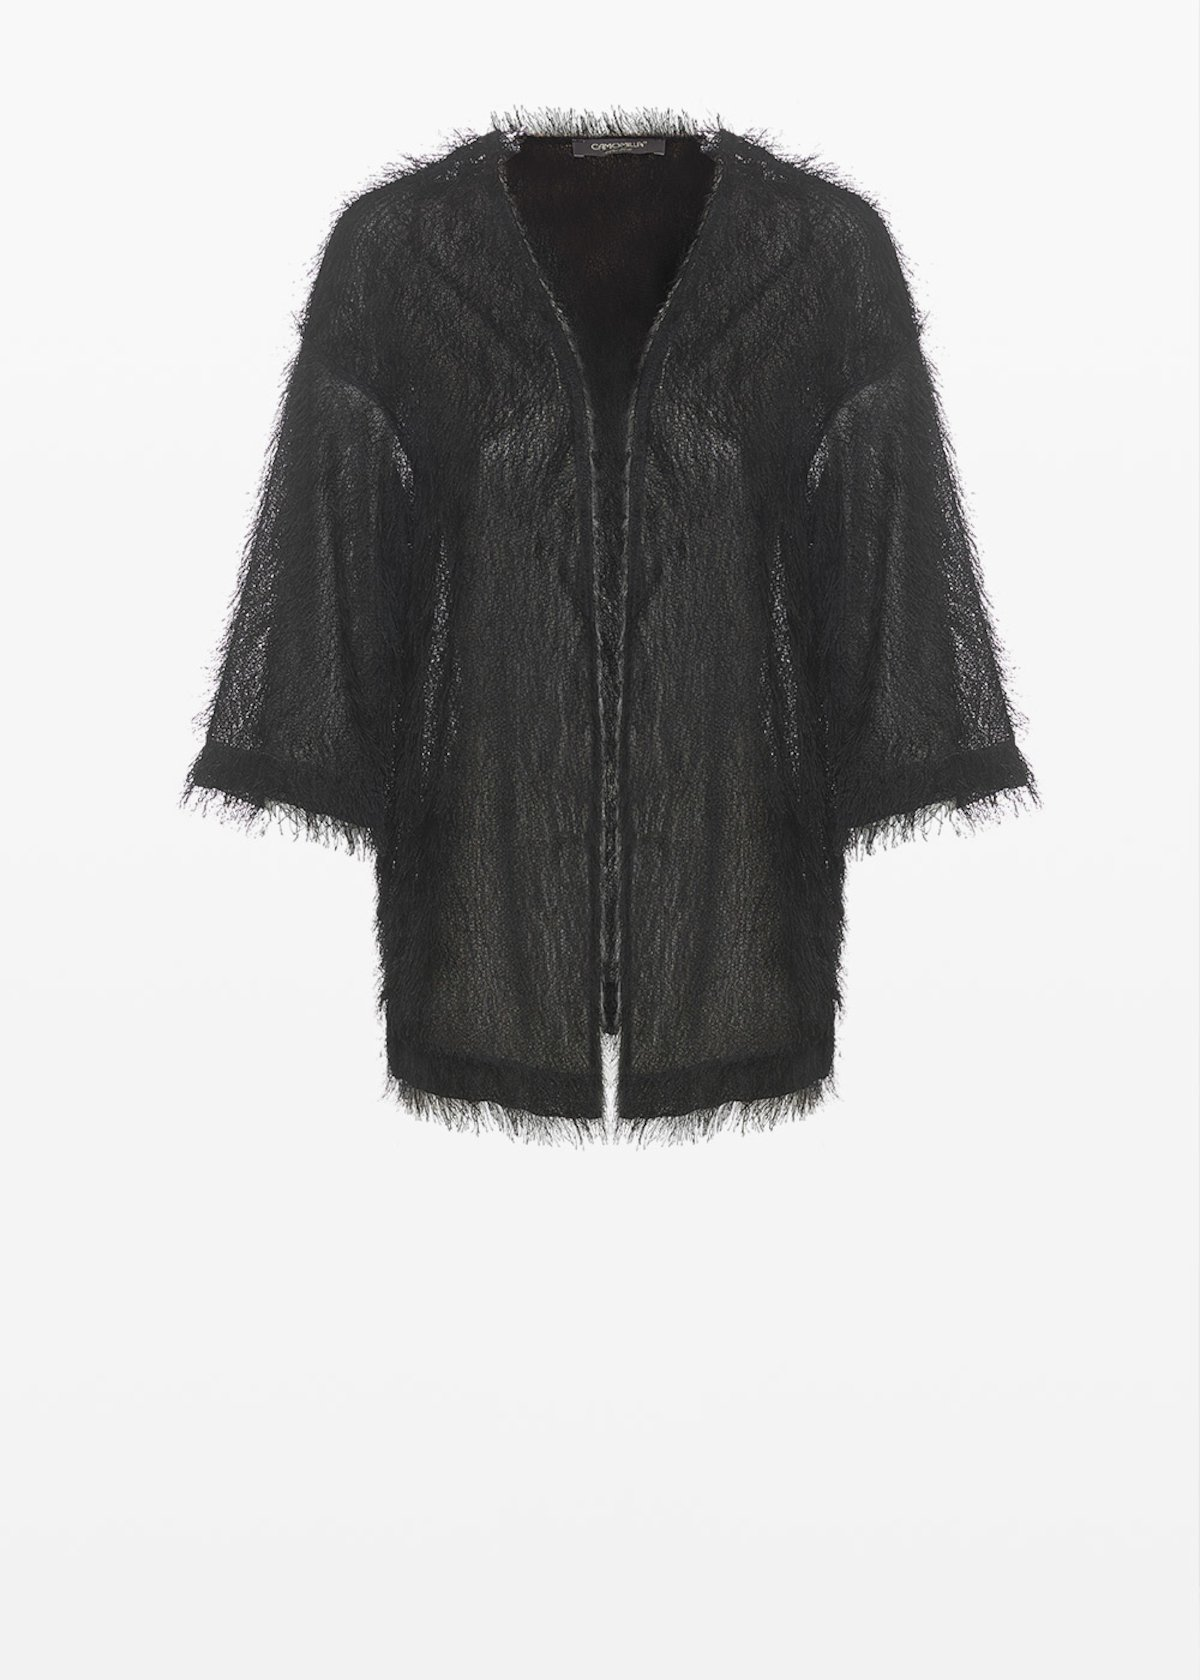 Craing faux fur unlined shrug - Black - Woman